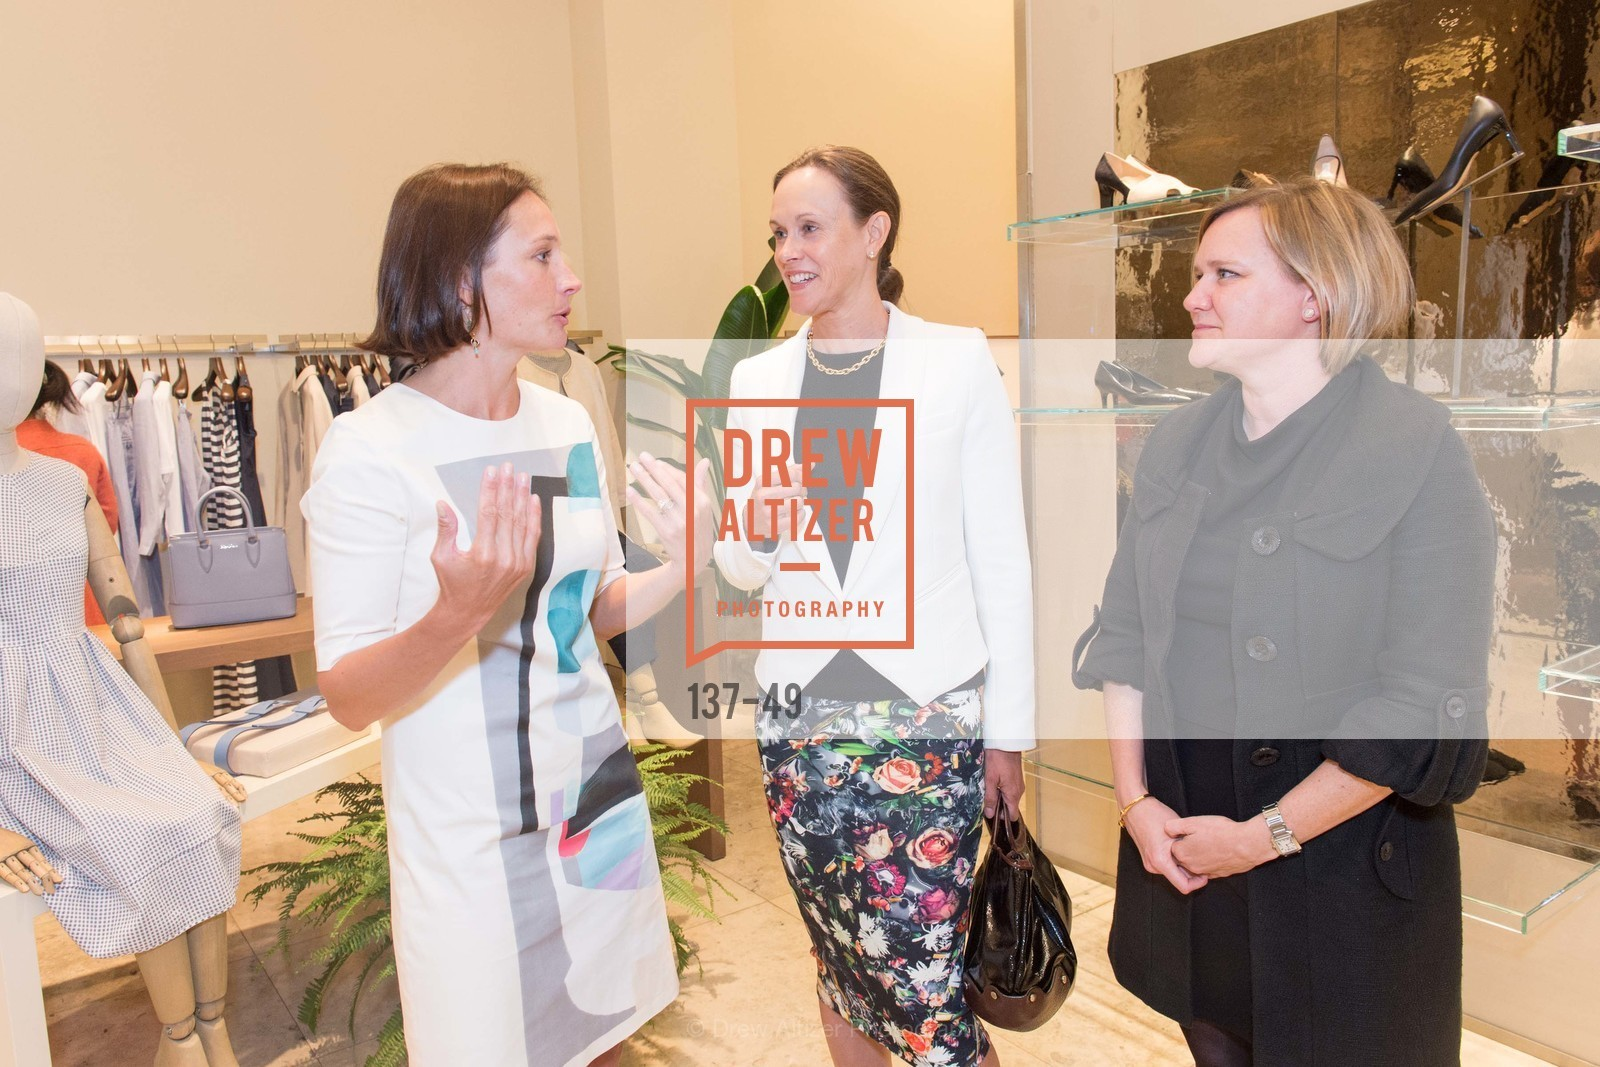 Betsy McDermott, Karen Flynn, Brandy Vause, Luncheon Hosted by Max Mara, Max Mara. 175 Post St, San Francisco, CA 94108, April 21st, 2015,Drew Altizer, Drew Altizer Photography, full-service agency, private events, San Francisco photographer, photographer california